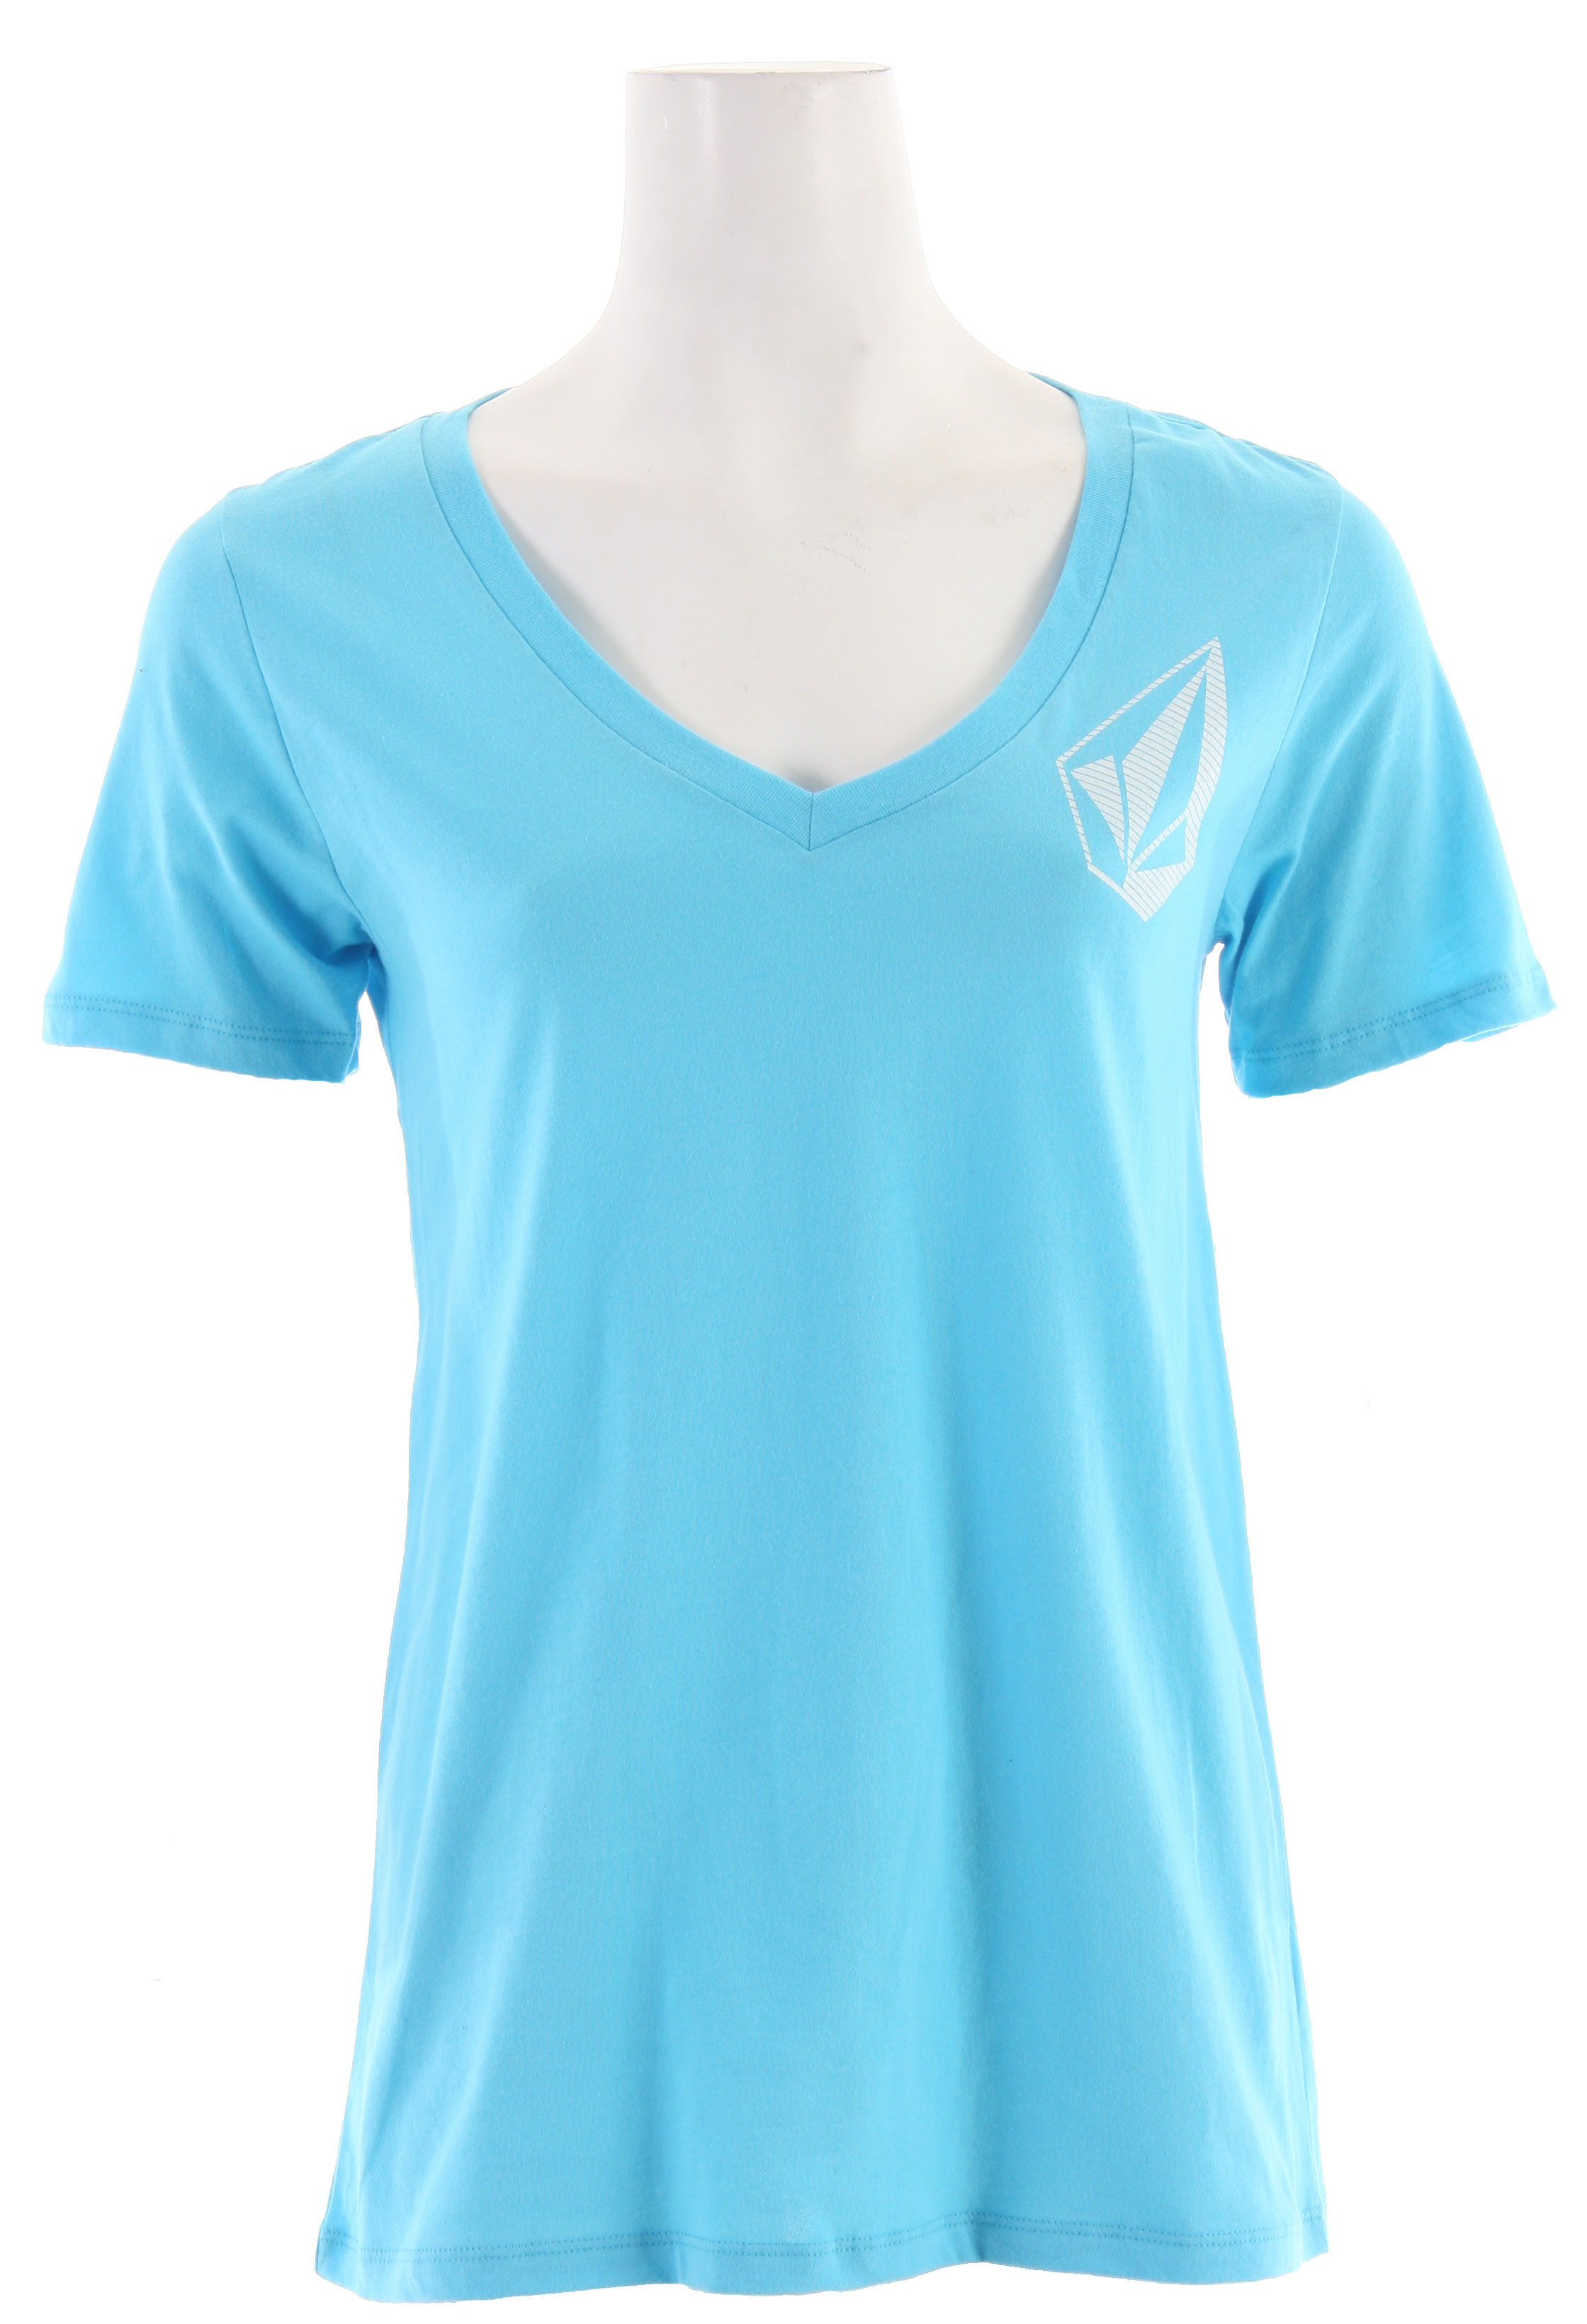 "Surf Key Features of The Volcom Stone Cool Boyfriend V-Neck T-Shirt: Regular Fit V Neck Short Sleeve V-neck tee with waterbase ink screen at front chest 26"" length 100% Cotton Extra Fine Jersey - $21.95"